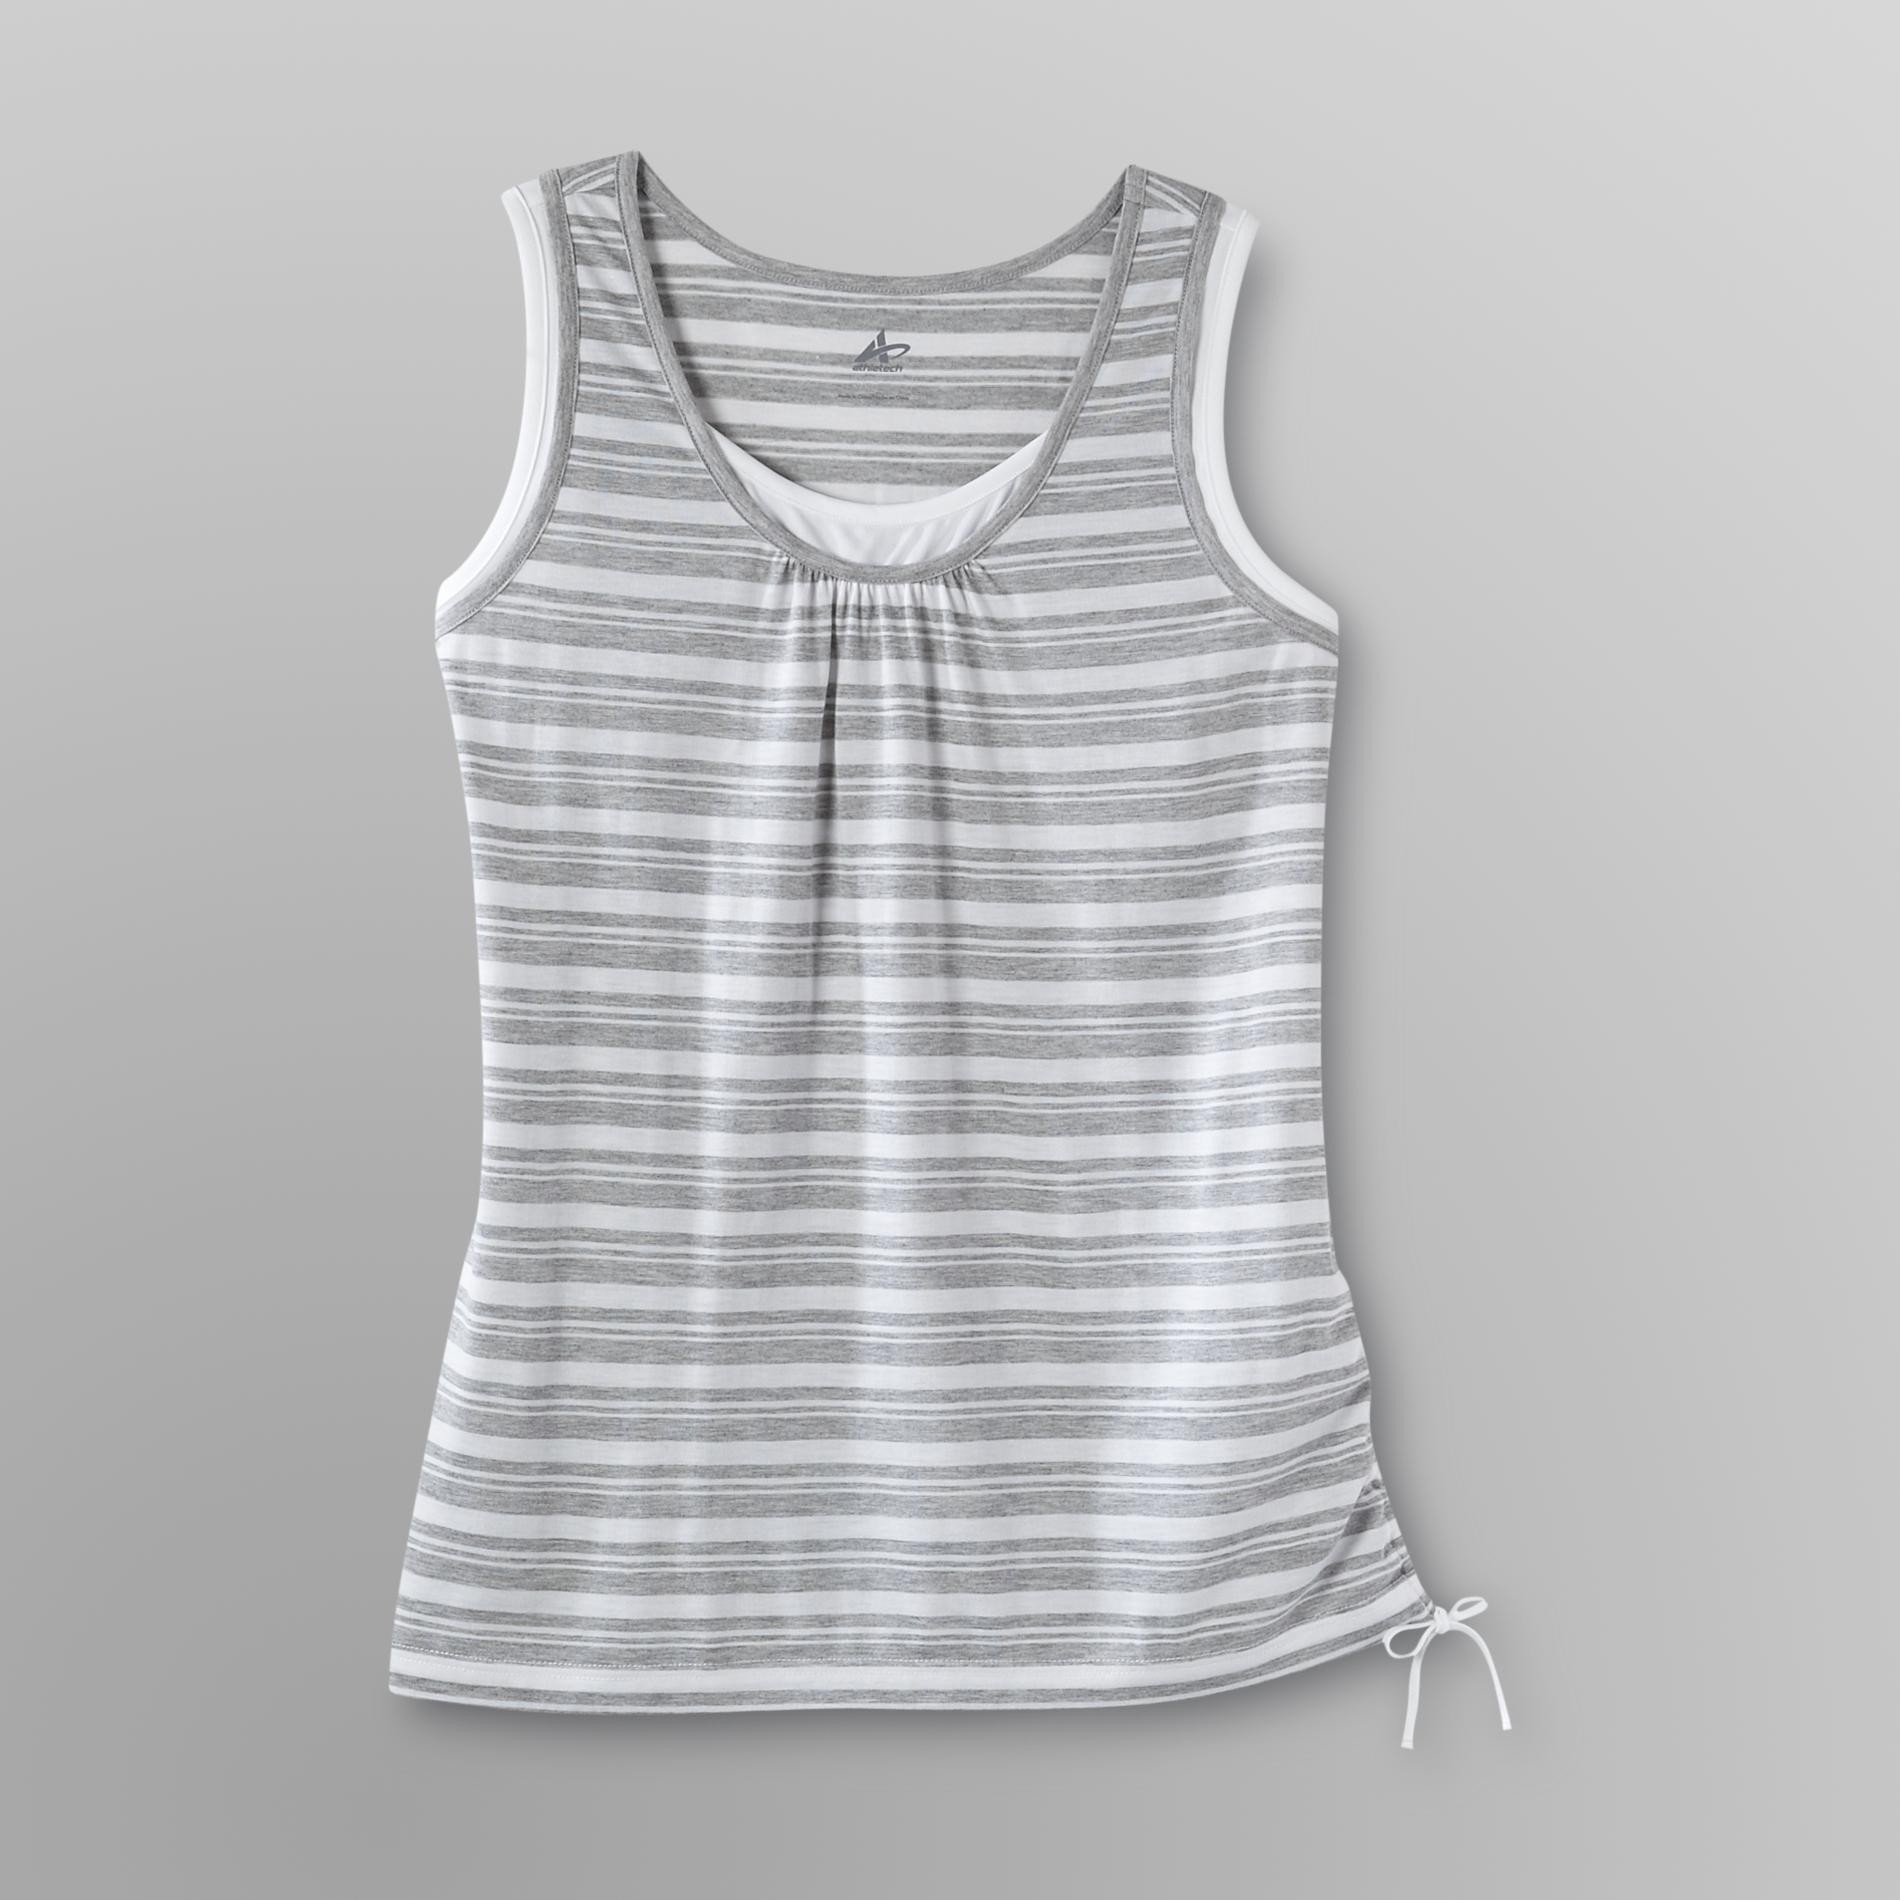 Athletech Women's Workout Top - Striped at Kmart.com